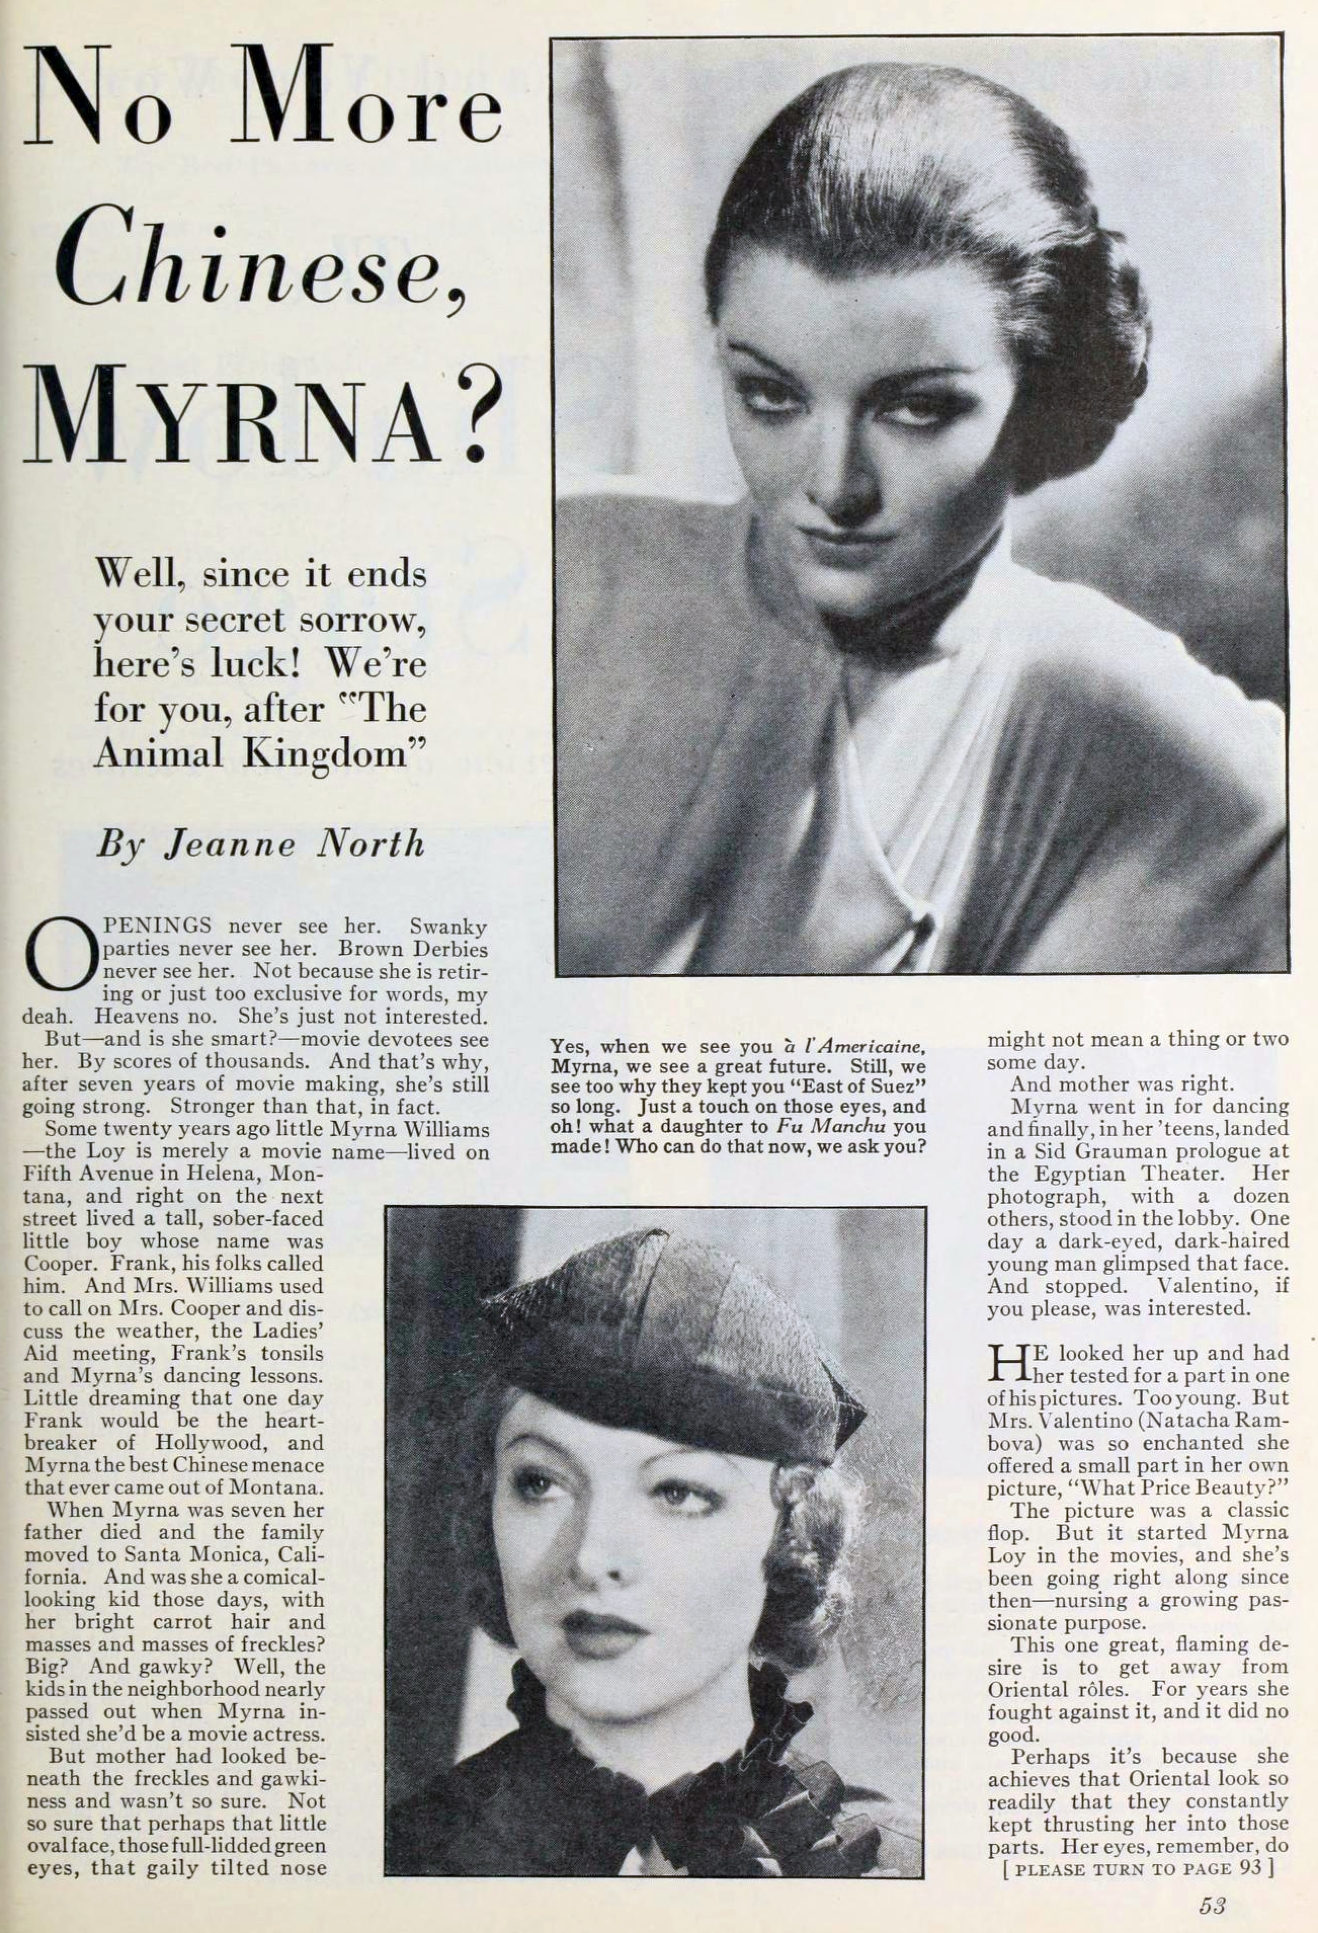 myrna loy photoplay april 1933 no more chinese, myrna 00a